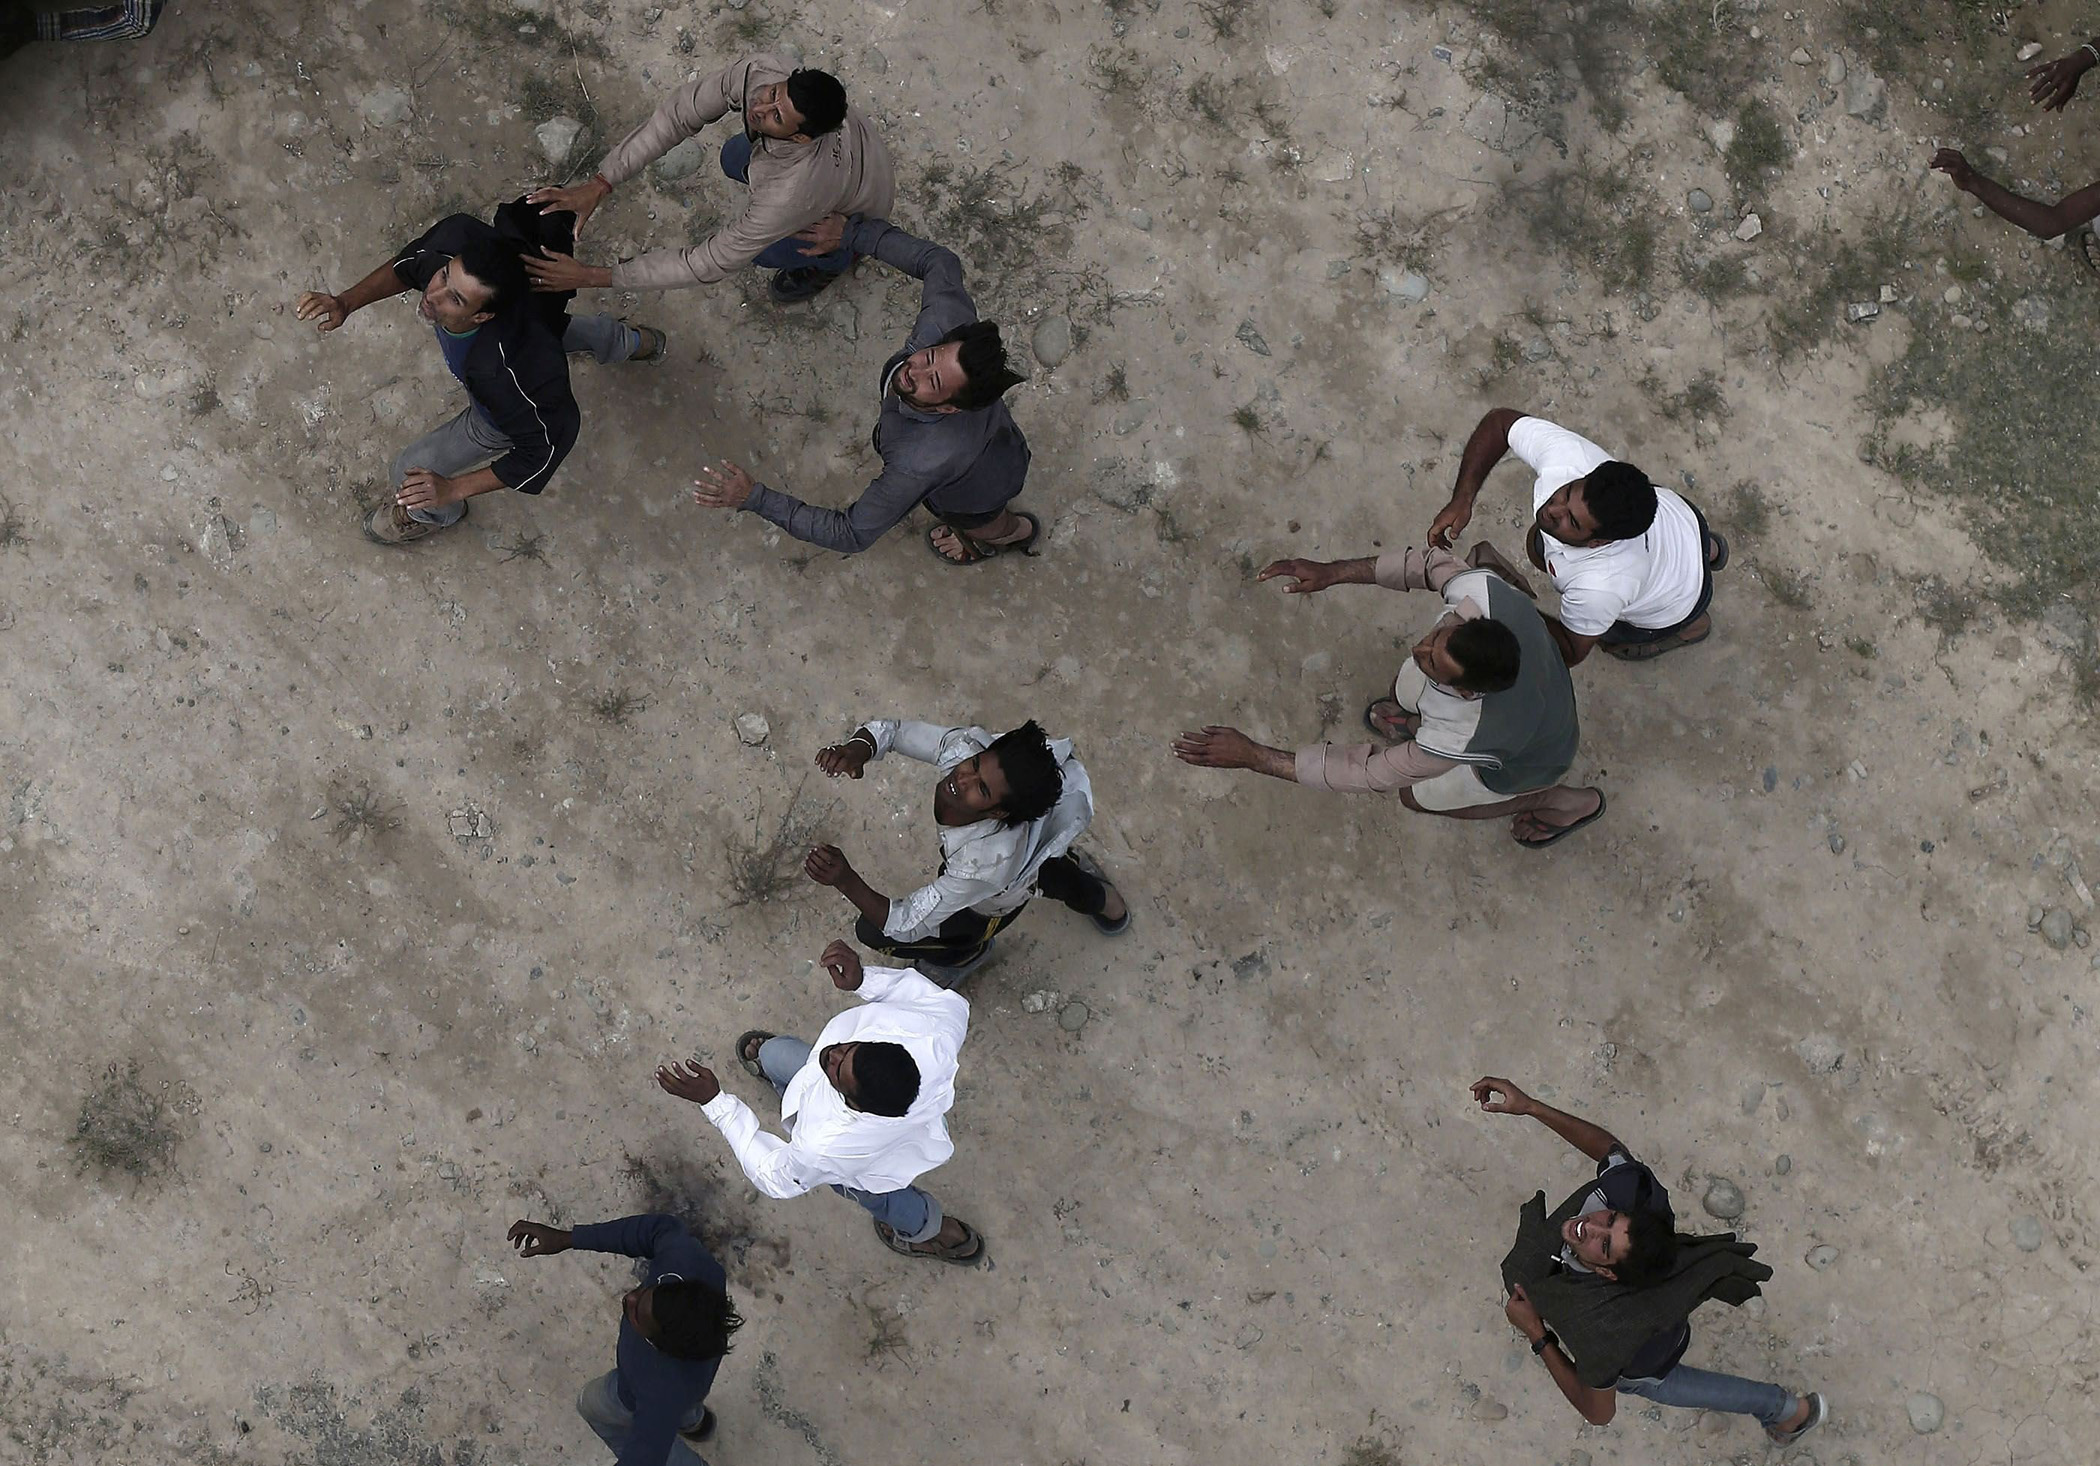 Flood victims run to collect food packages and relief materials dropped from an Indian Air Force helicopter in Srinagar, Sept. 11, 2014.